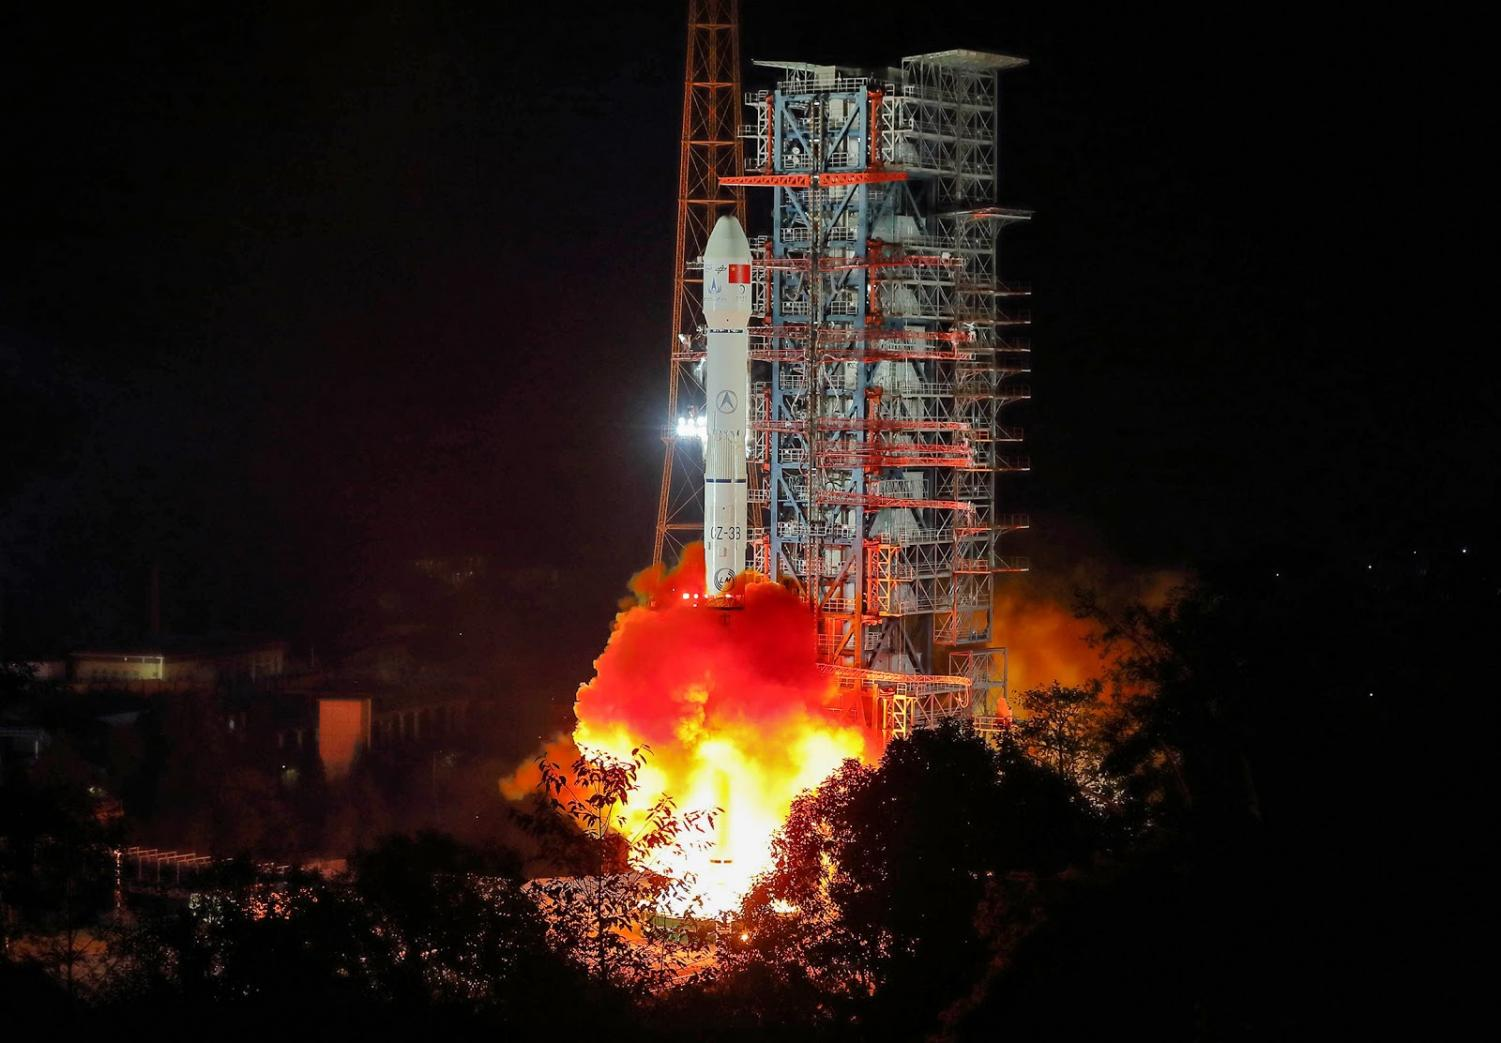 Being able to land the rover is a milestone for China in its attempt to make itself a leading space power, according to cnn.com.